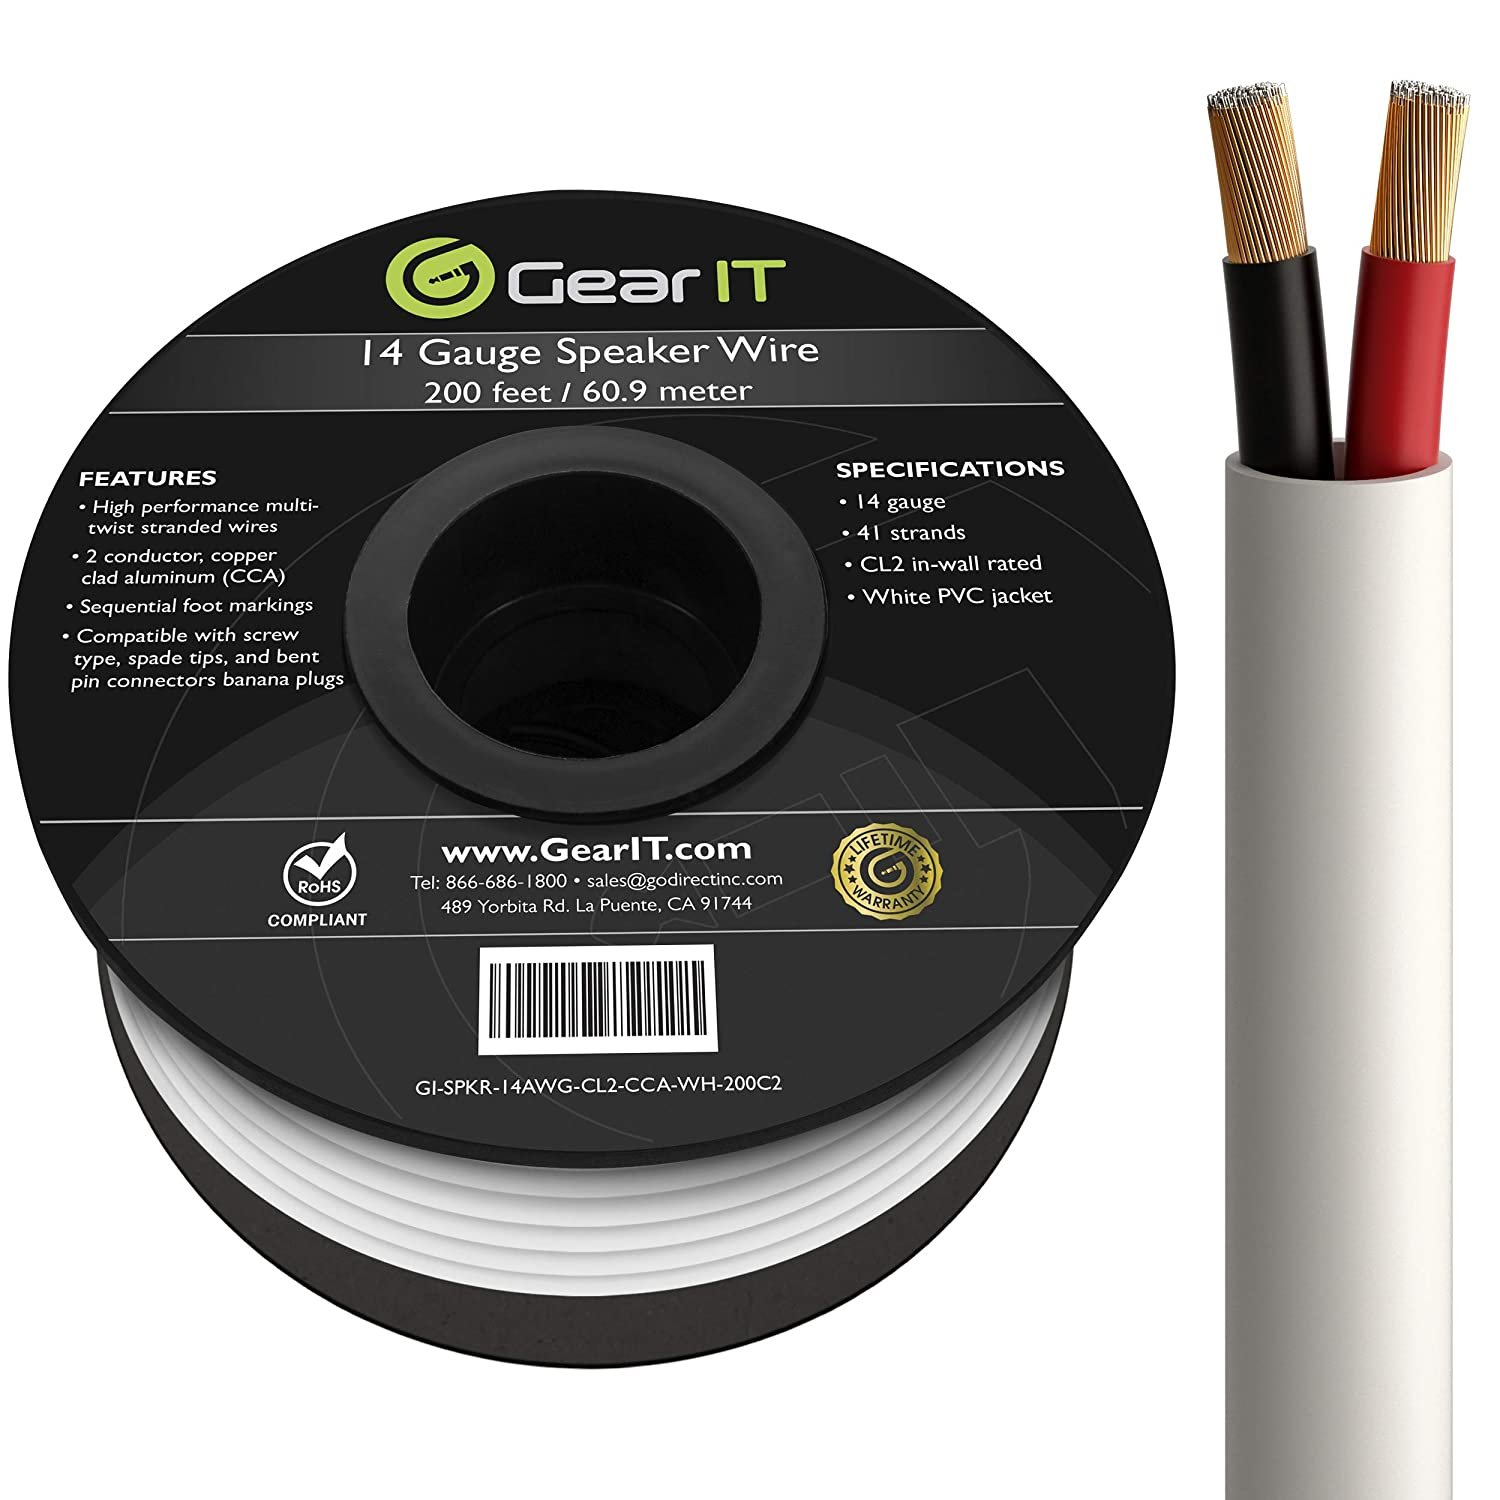 GearIT Pro Series 14 Gauge 2-Conductor Speaker Wire (200 Feet / 60.96 Meters) CCA Speaker Wire CL2 Rated for in-Wall Speaker Cable, White